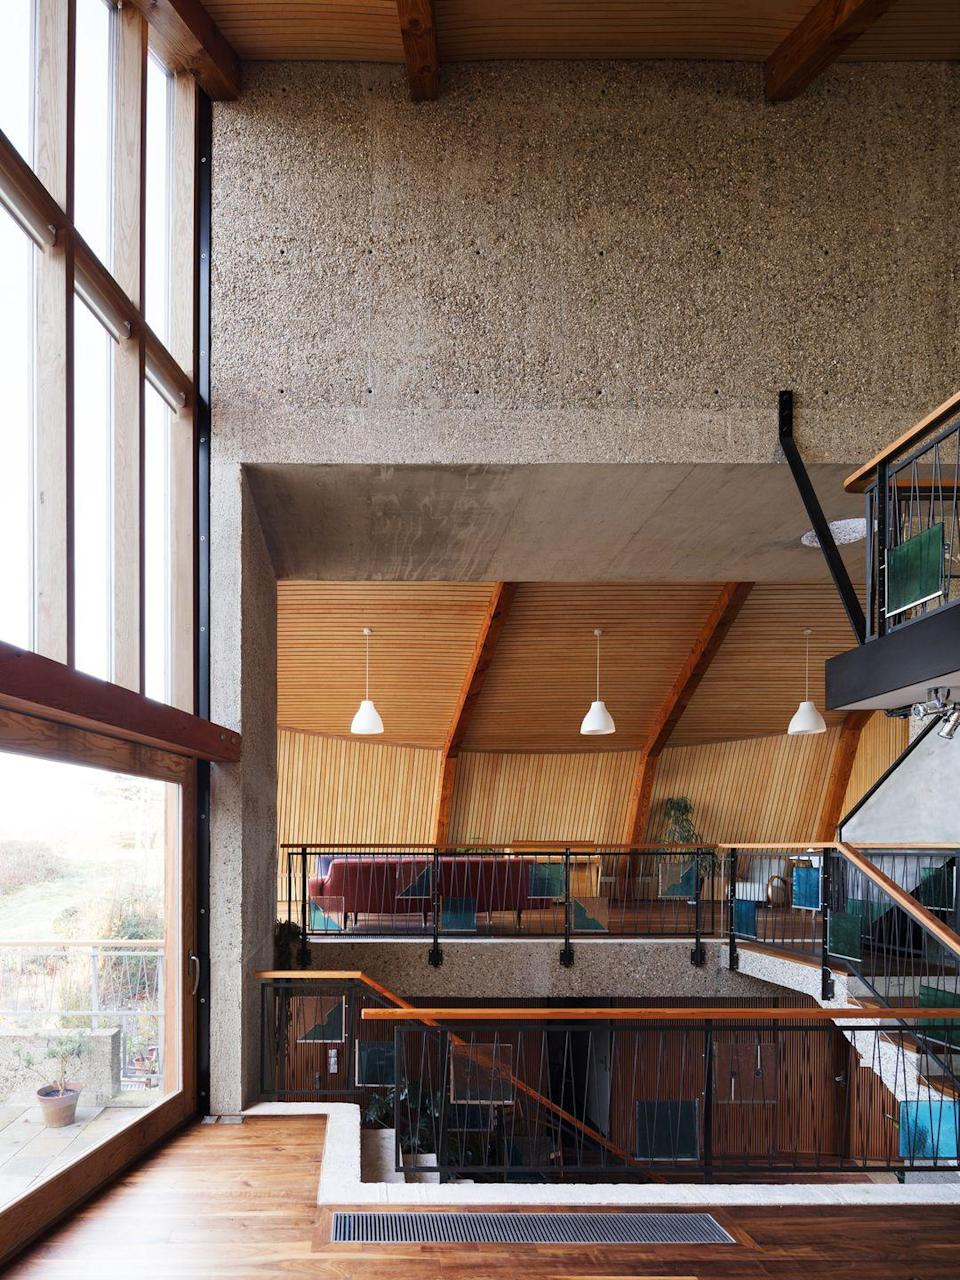 """<p>With architects Meredith Bowles and Ian Bramwell at the helm, this practice is adept at creating properties with striking silhouettes and intelligent use of materials. It has even collaborated with superstar architects Atelier Peter Zumthor and MVRDV for the Living Architecture holiday homes.</p><p><strong>They say </strong>'We design houses that are contemporary, with an interest in materials and vernacular architecture, often finding dramatic solutions.' <a href=""""https://www.molearchitects.co.uk/"""" rel=""""nofollow noopener"""" target=""""_blank"""" data-ylk=""""slk:molearchitects.co.uk"""" class=""""link rapid-noclick-resp"""">molearchitects.co.uk</a></p>"""